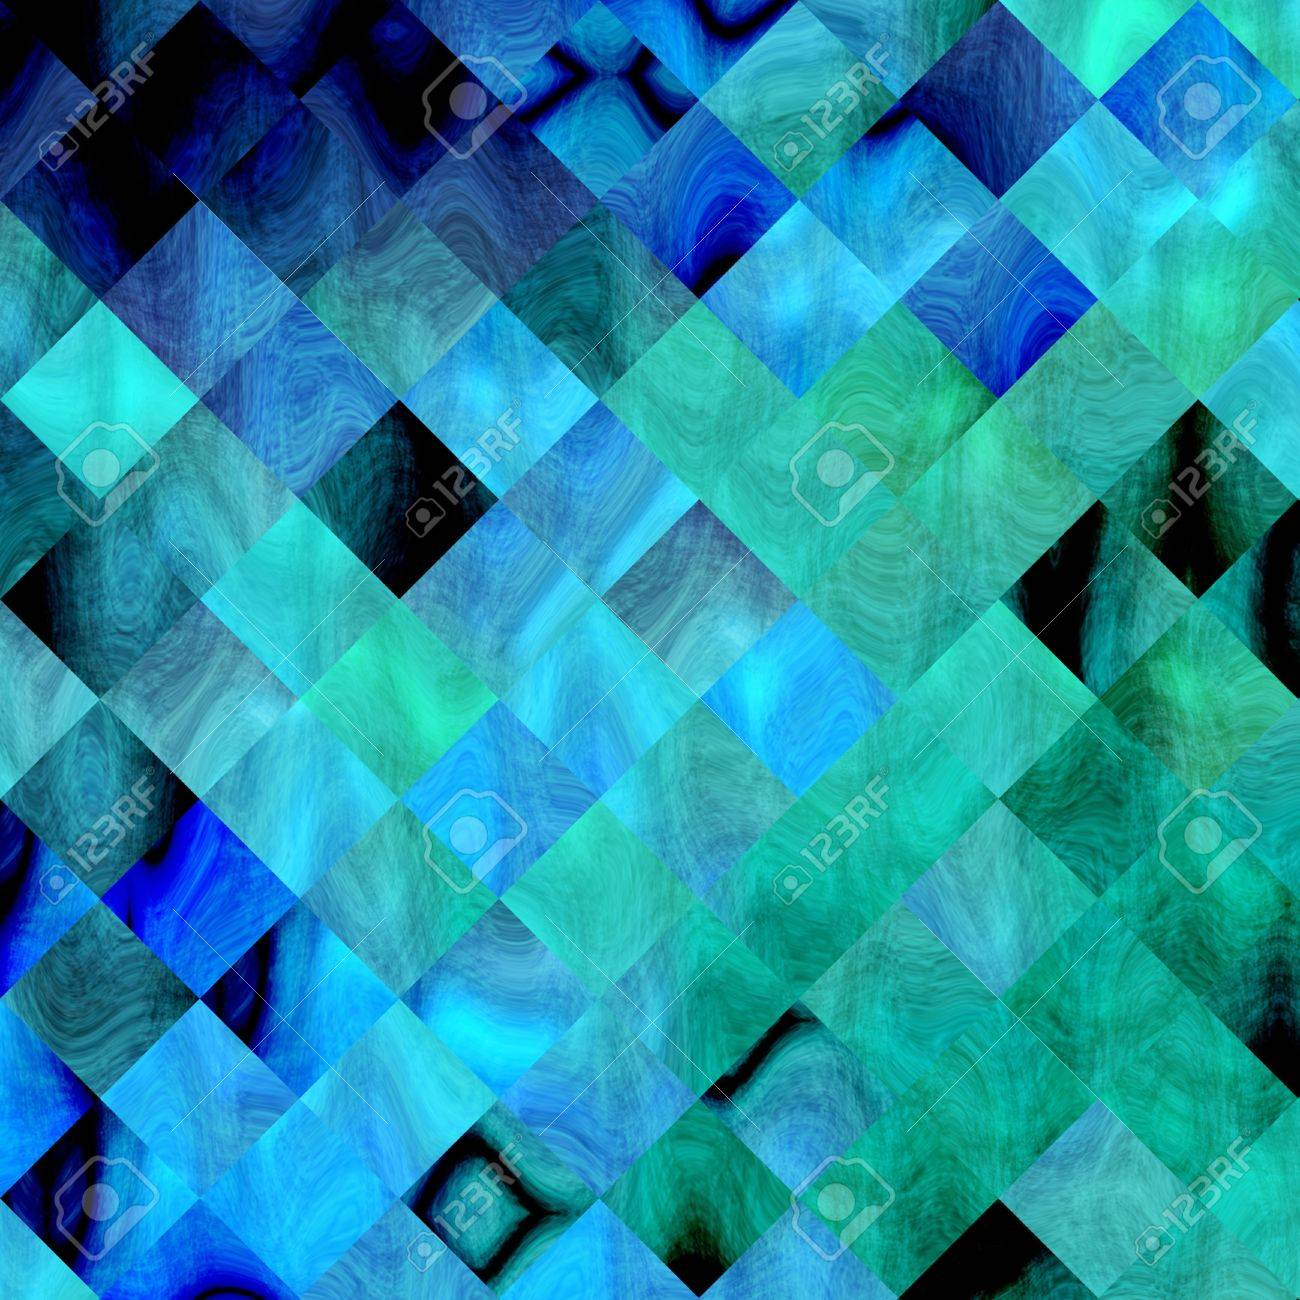 background paper Textures and Backgrounds grungy squares mixed colors. Wallpaper background or backdrop for different types of design Stock Photo - 18503661